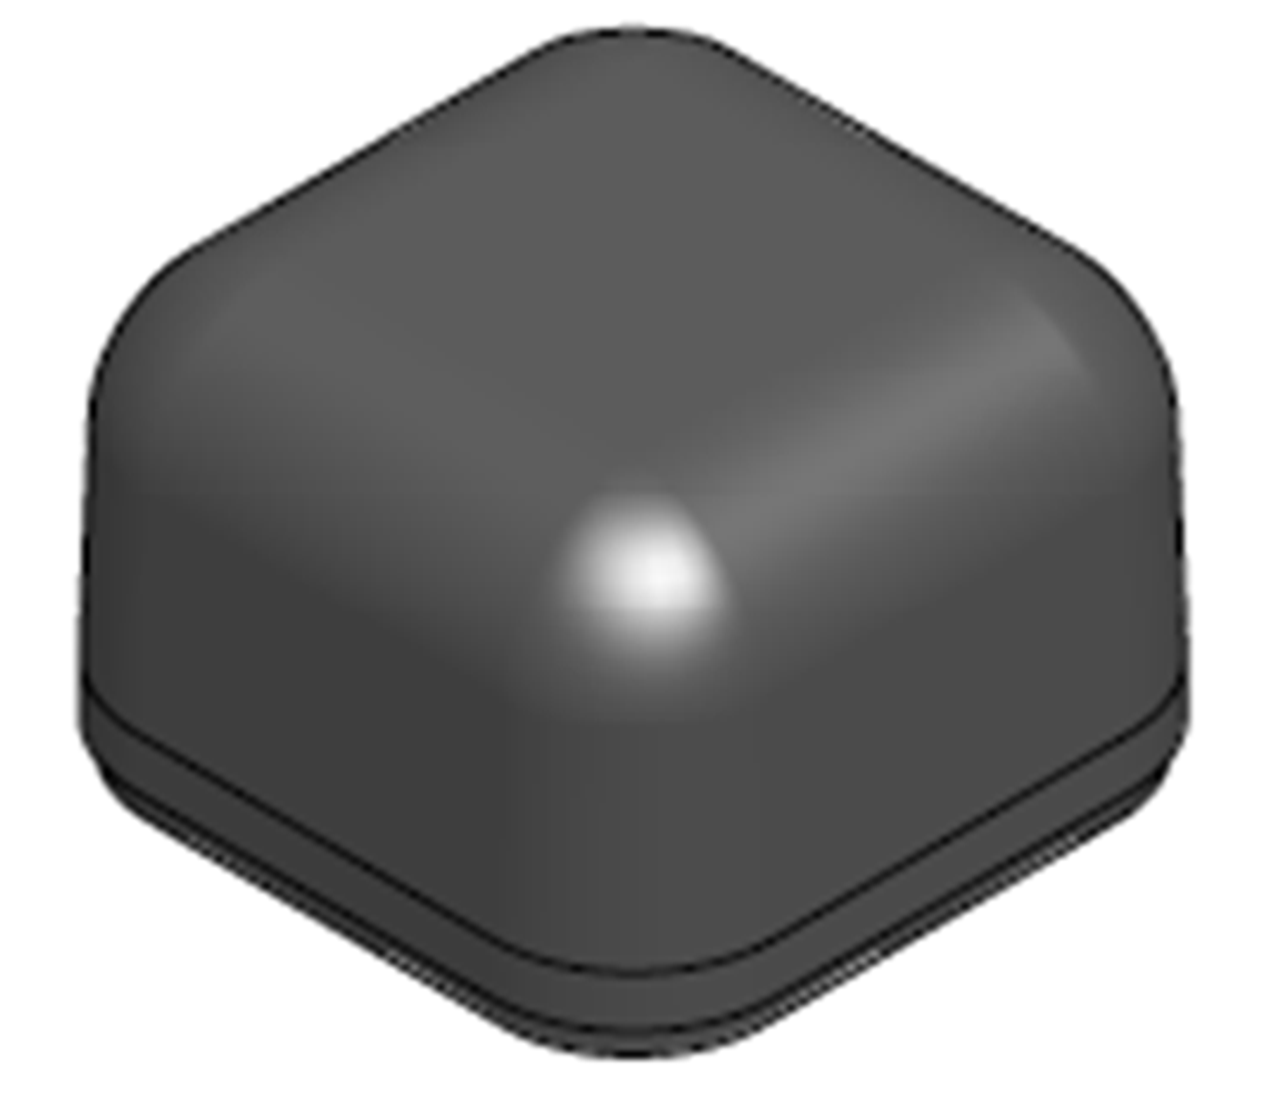 M400 Low Profile Series Antenna - Side Top View